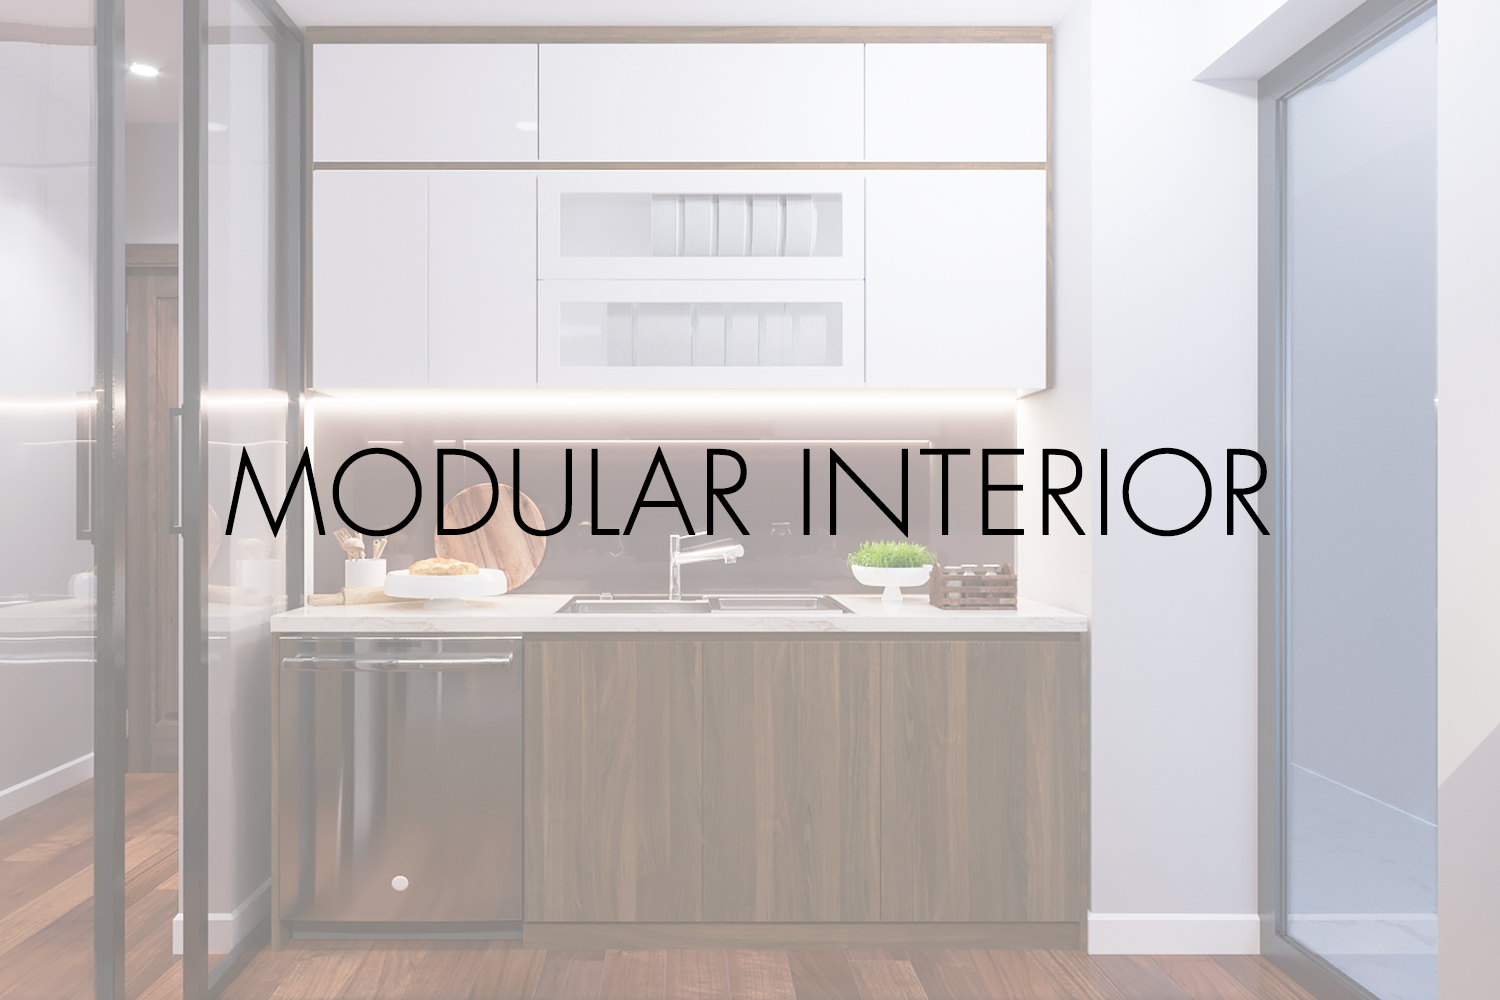 Modular Interior: The trend of the day